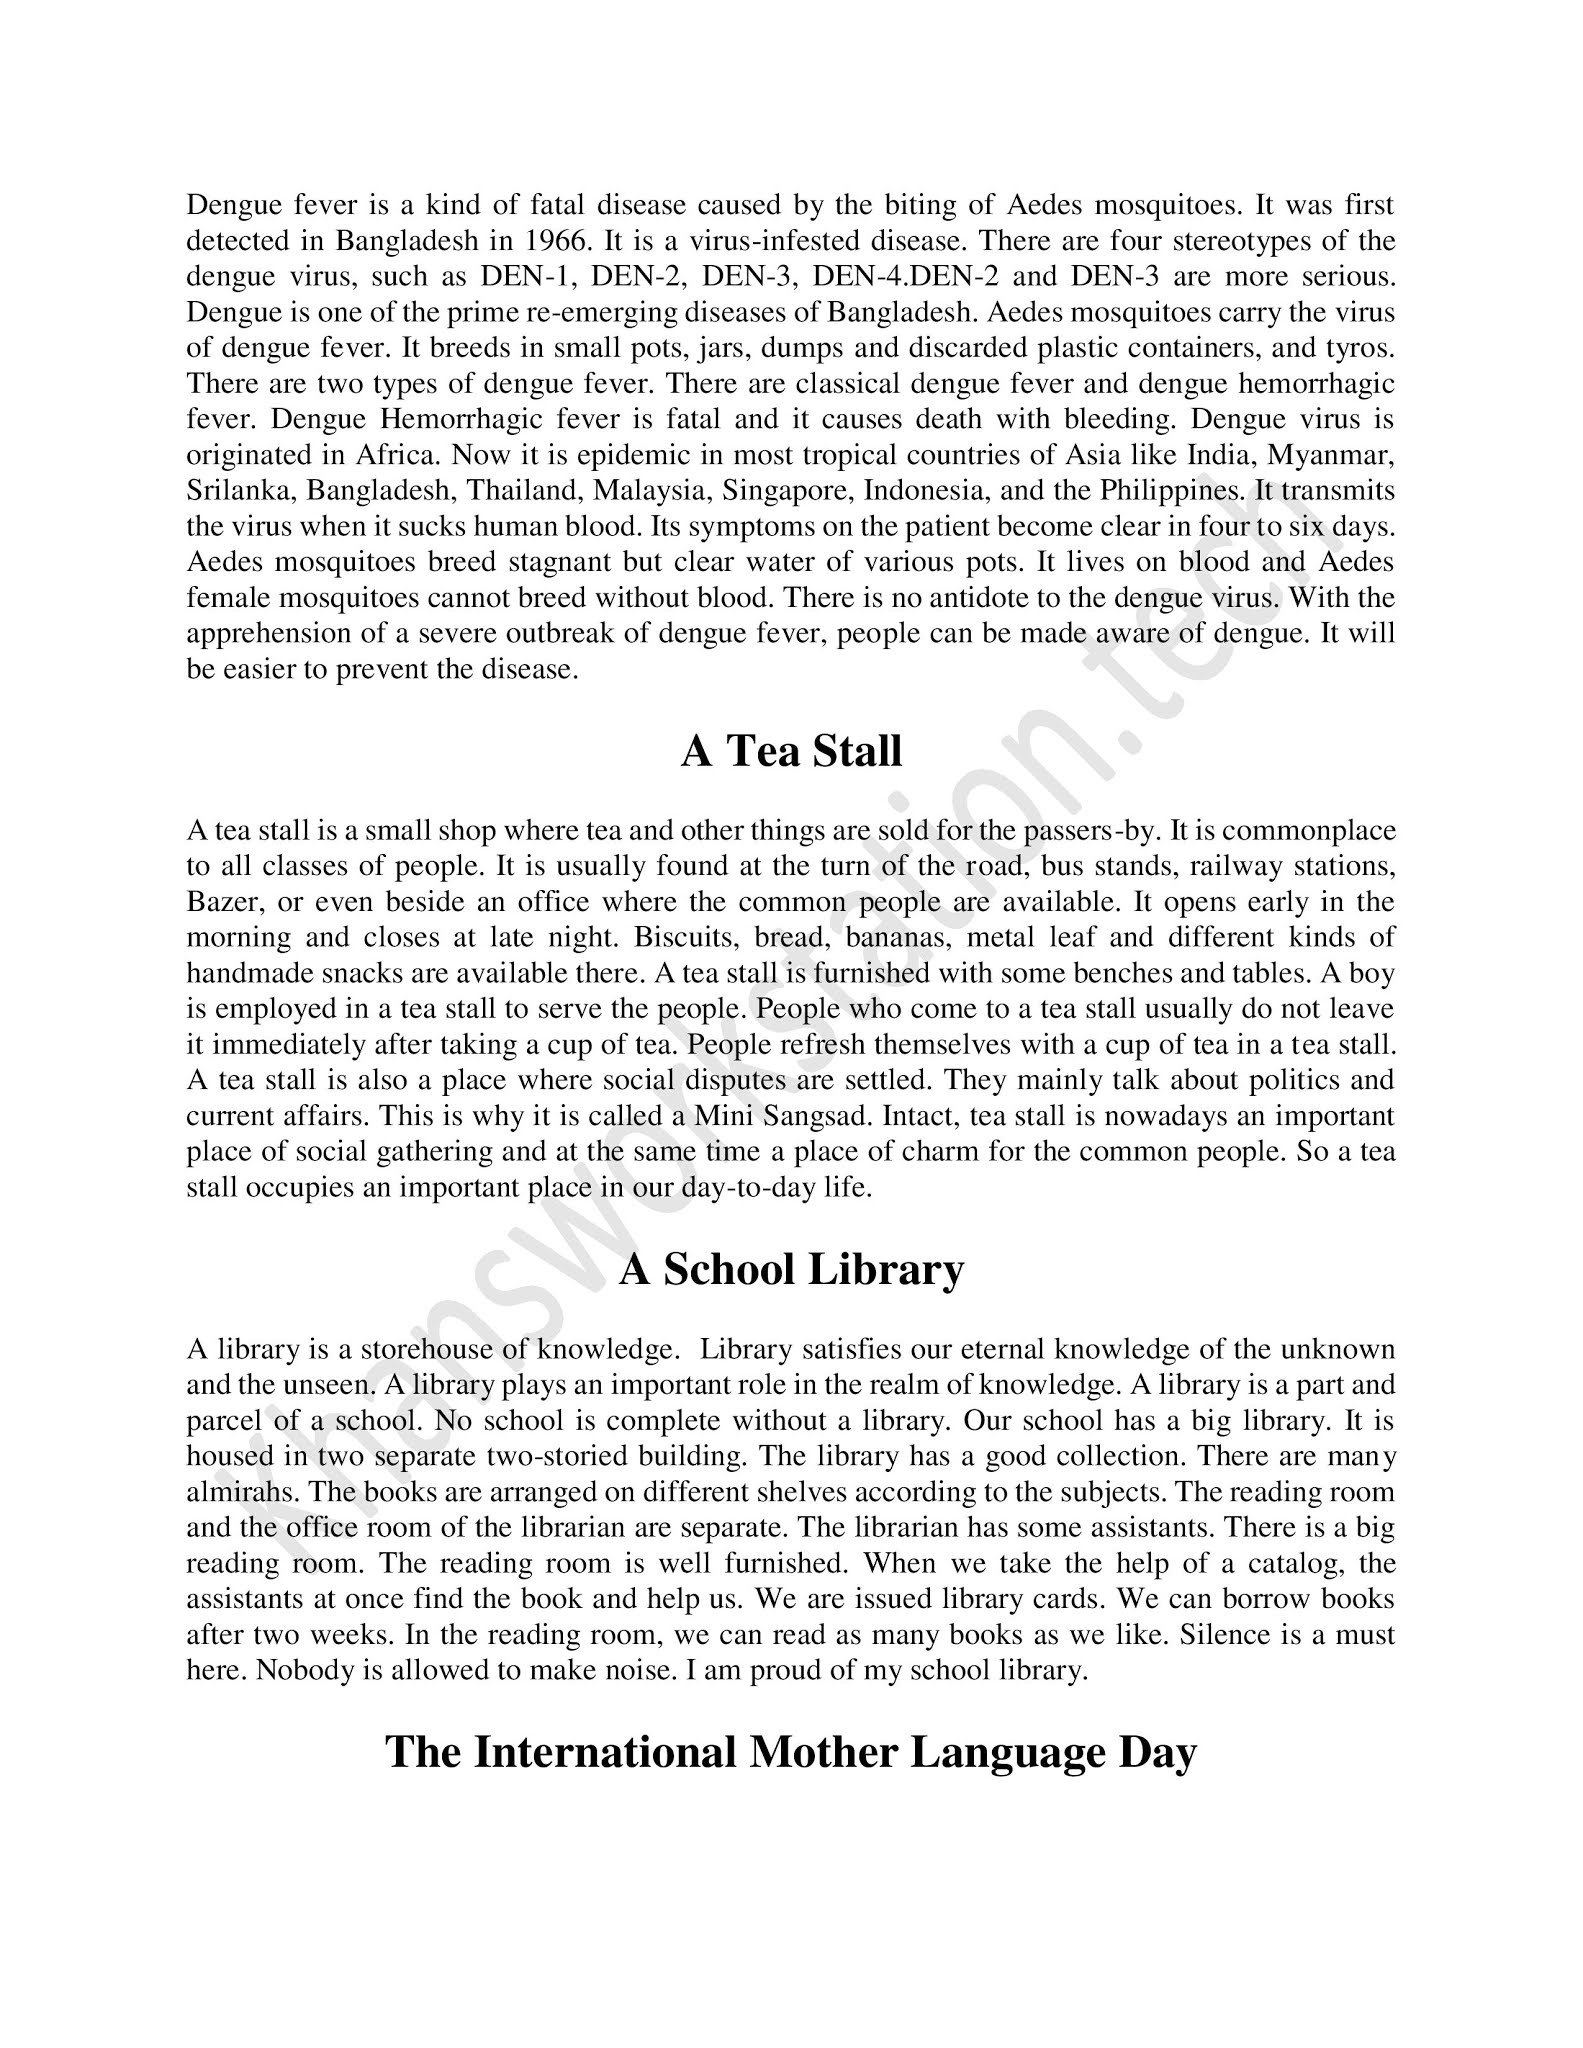 short paragraph in english